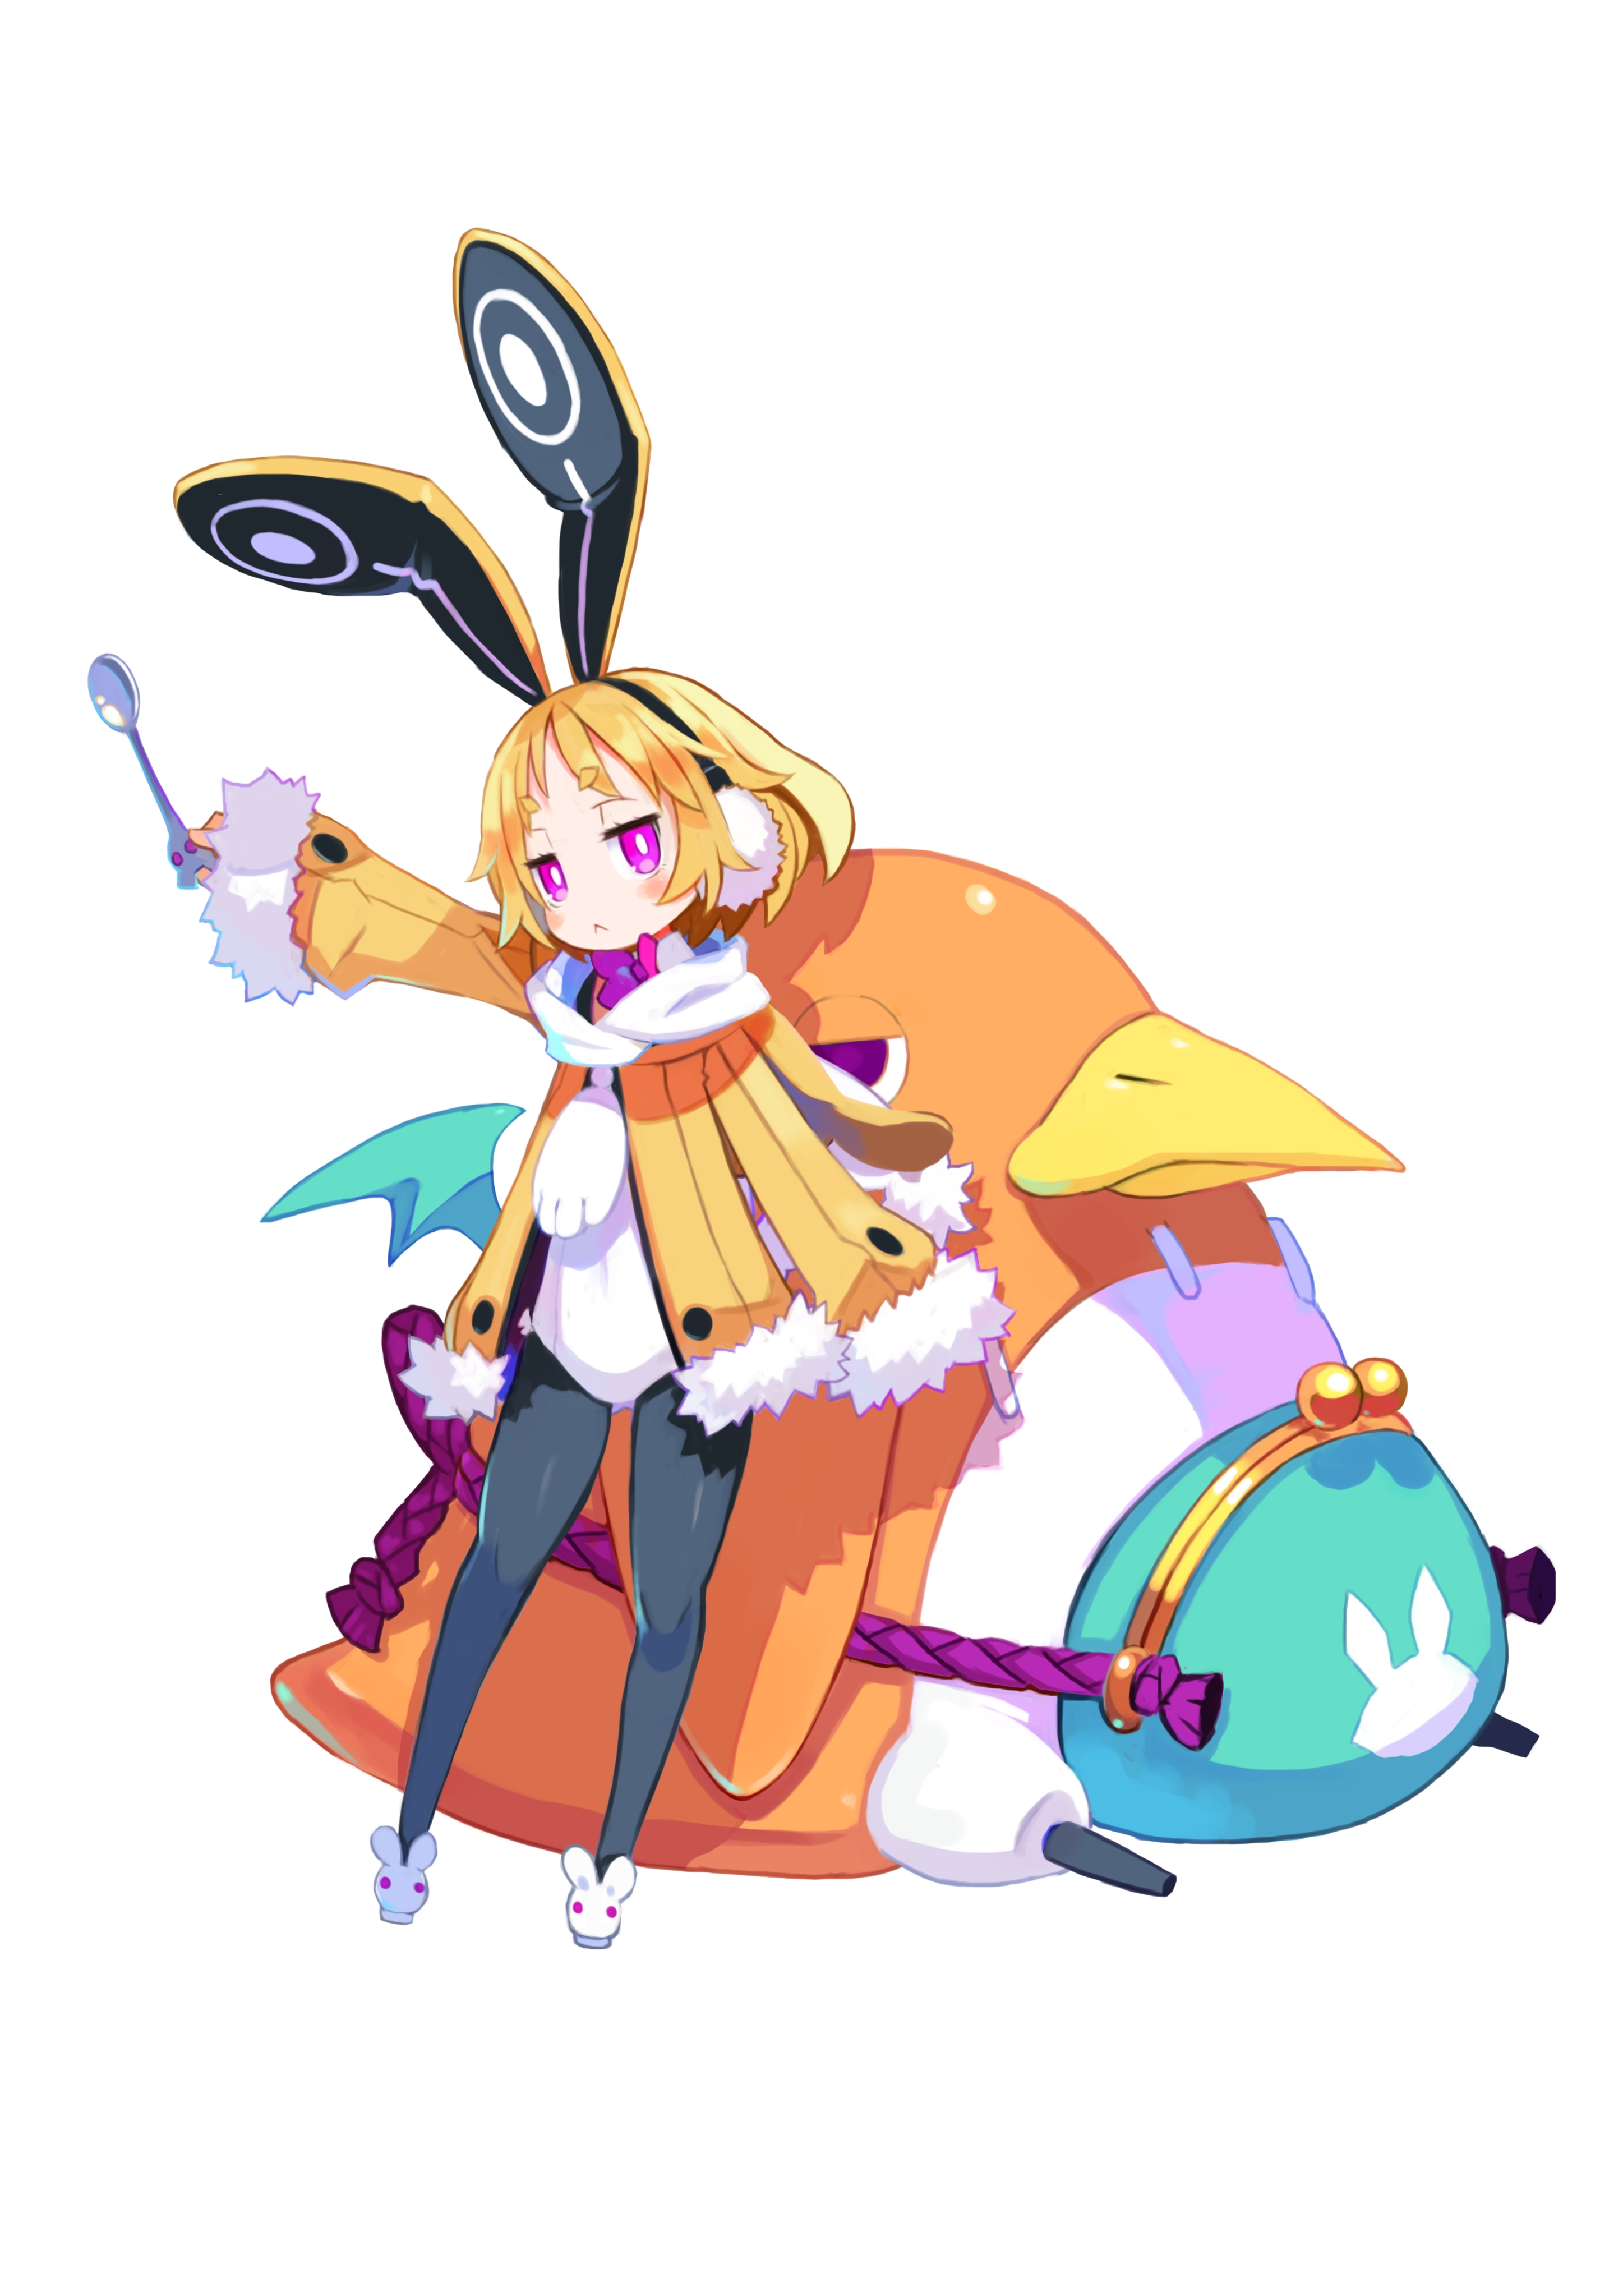 disgaea-5-ps4-images-picture001_2